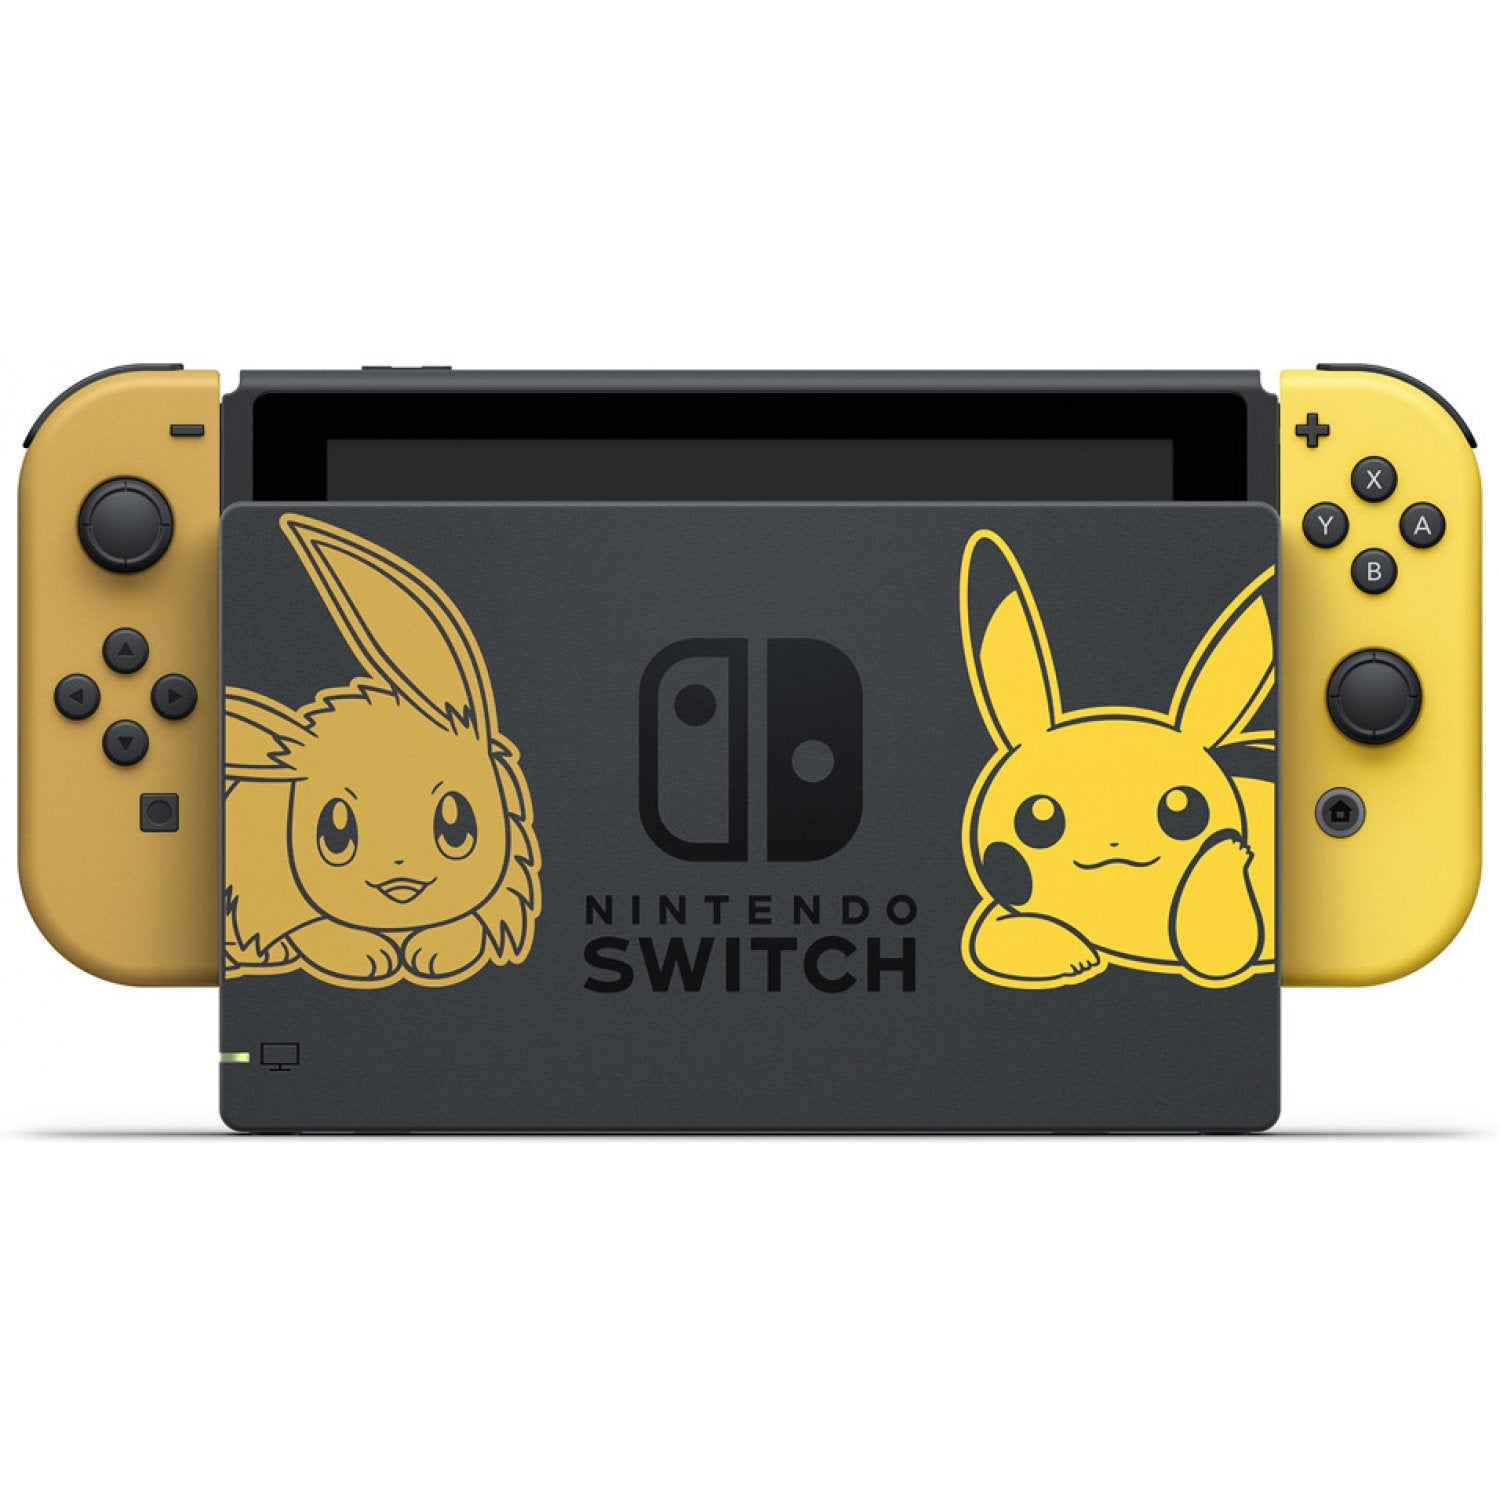 Nintendo Switch Pokemon Let's Go Pikachu Console